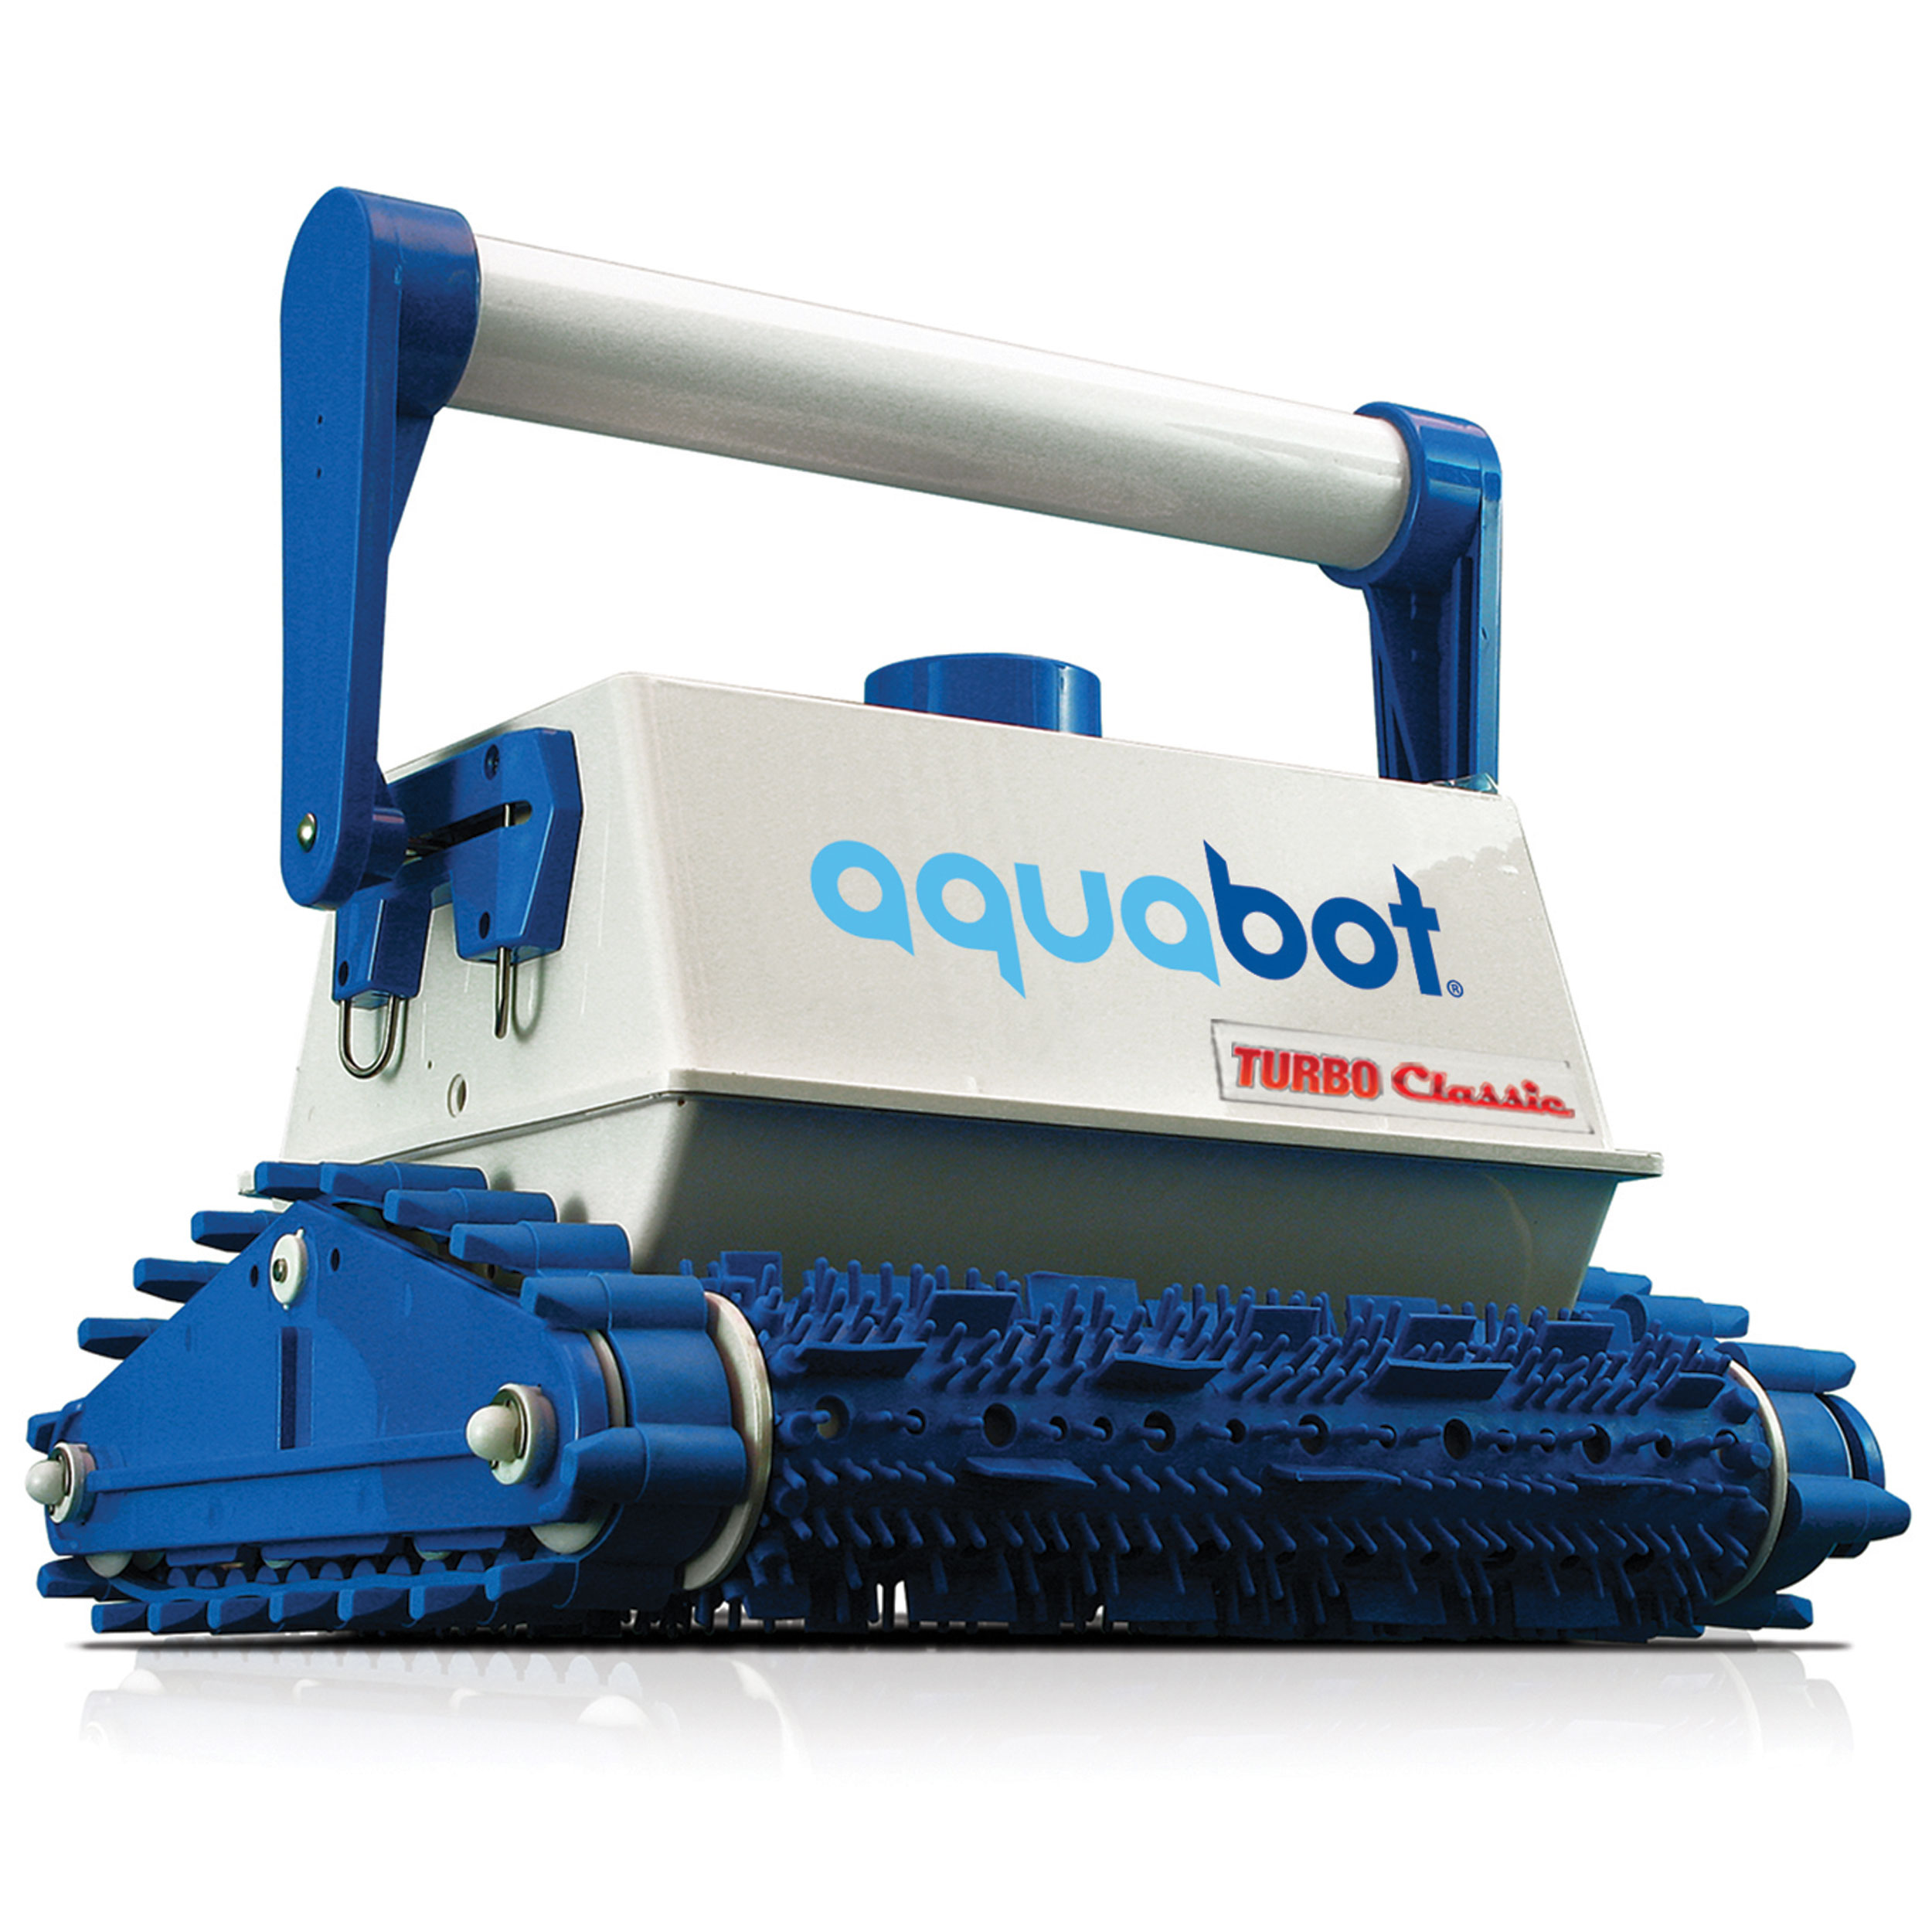 Aquabot Classic Turbo Automatic Robotic In Ground Pool Cleaner